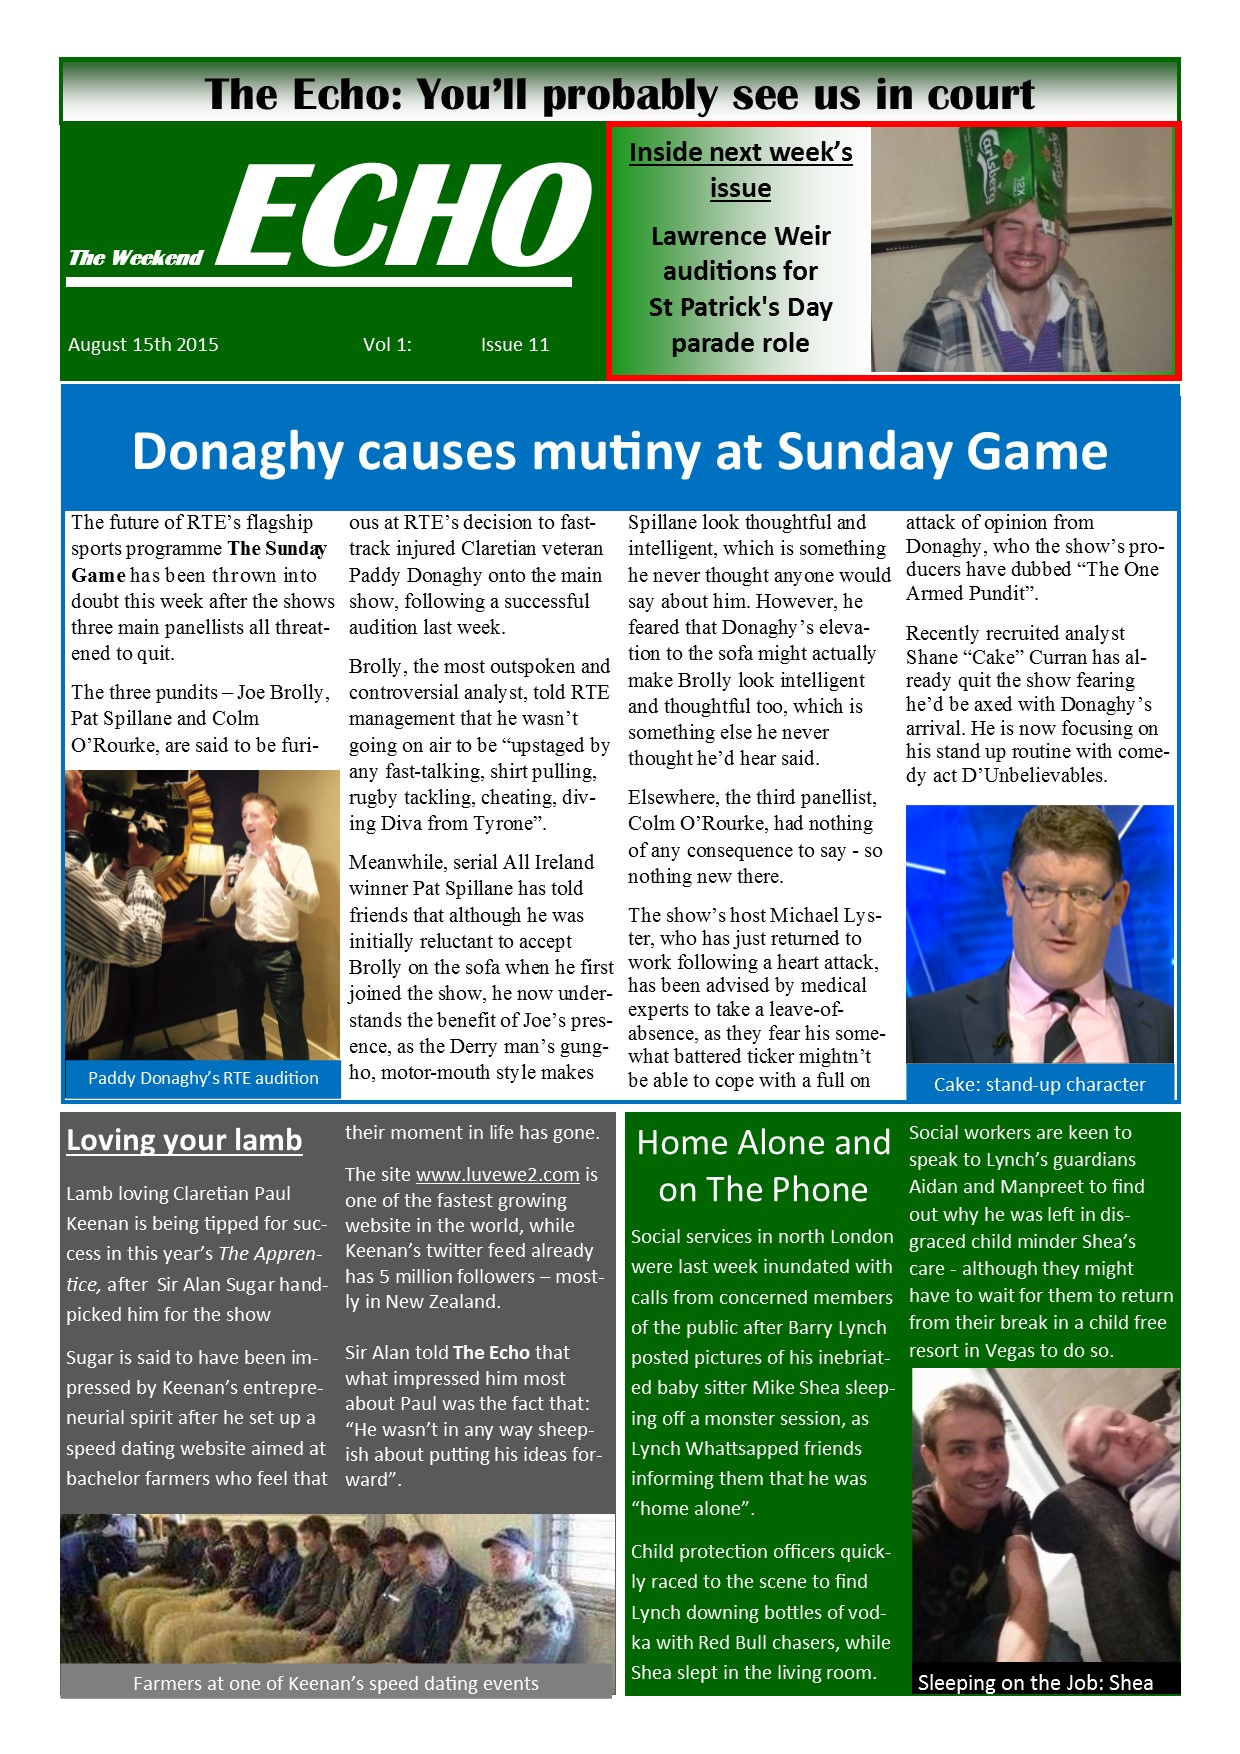 Weekend Echo Issue 11. The weekly newsletter from St Clarets GFC in London. London's best GAA club. A Gaelic football club to be proud of.